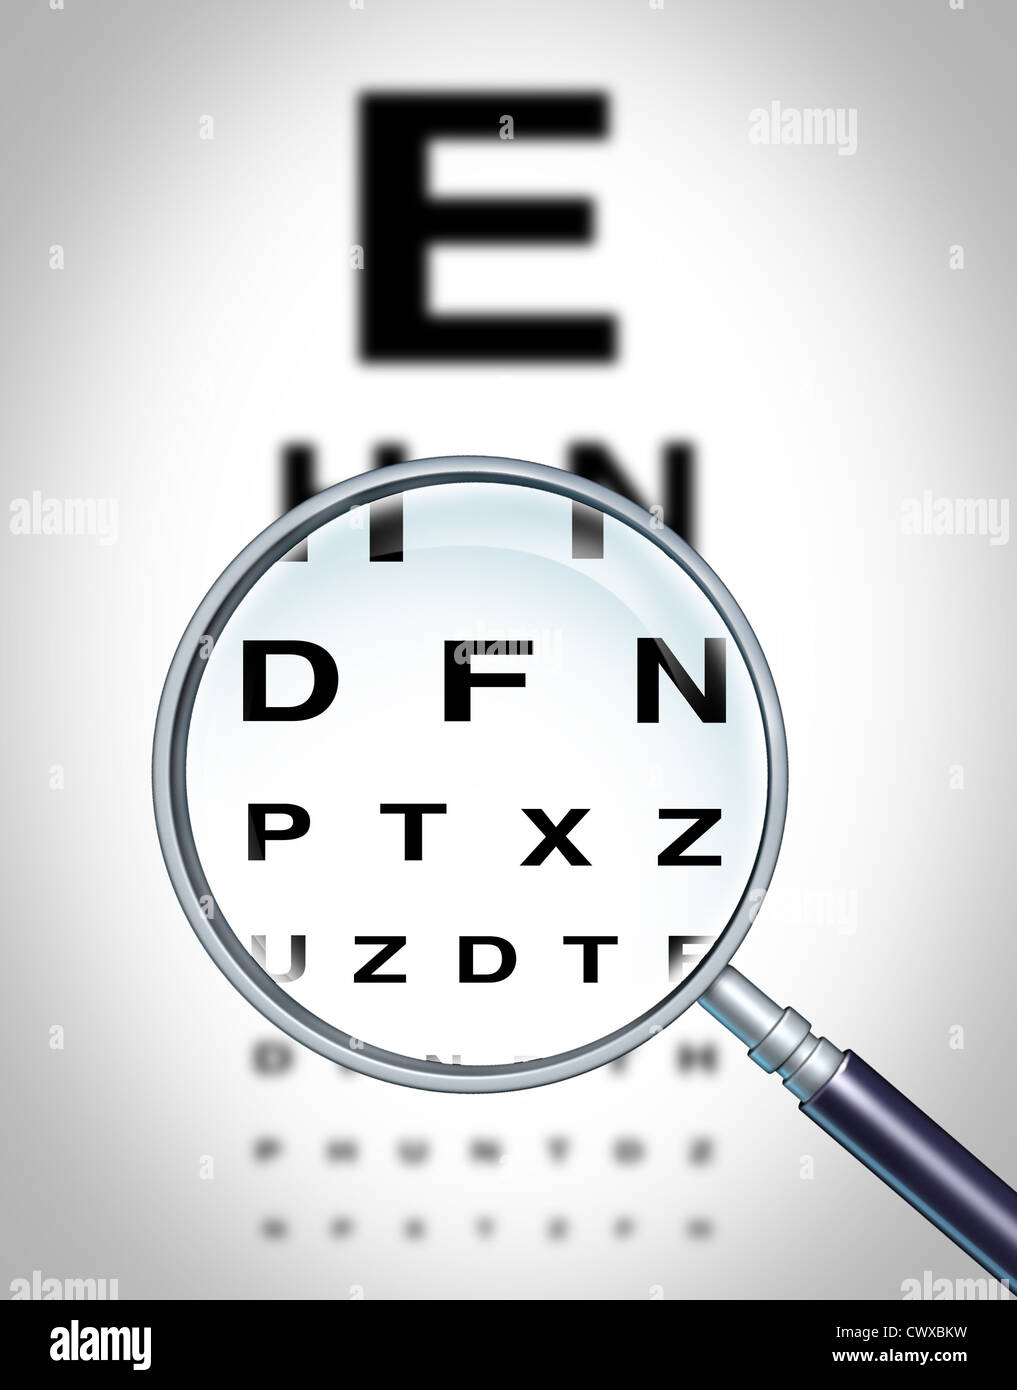 Human eye vision chart and sight medical optometrist symbol for human eye vision chart and sight medical optometrist symbol for the ophthalmology department in ahospital with nvjuhfo Images